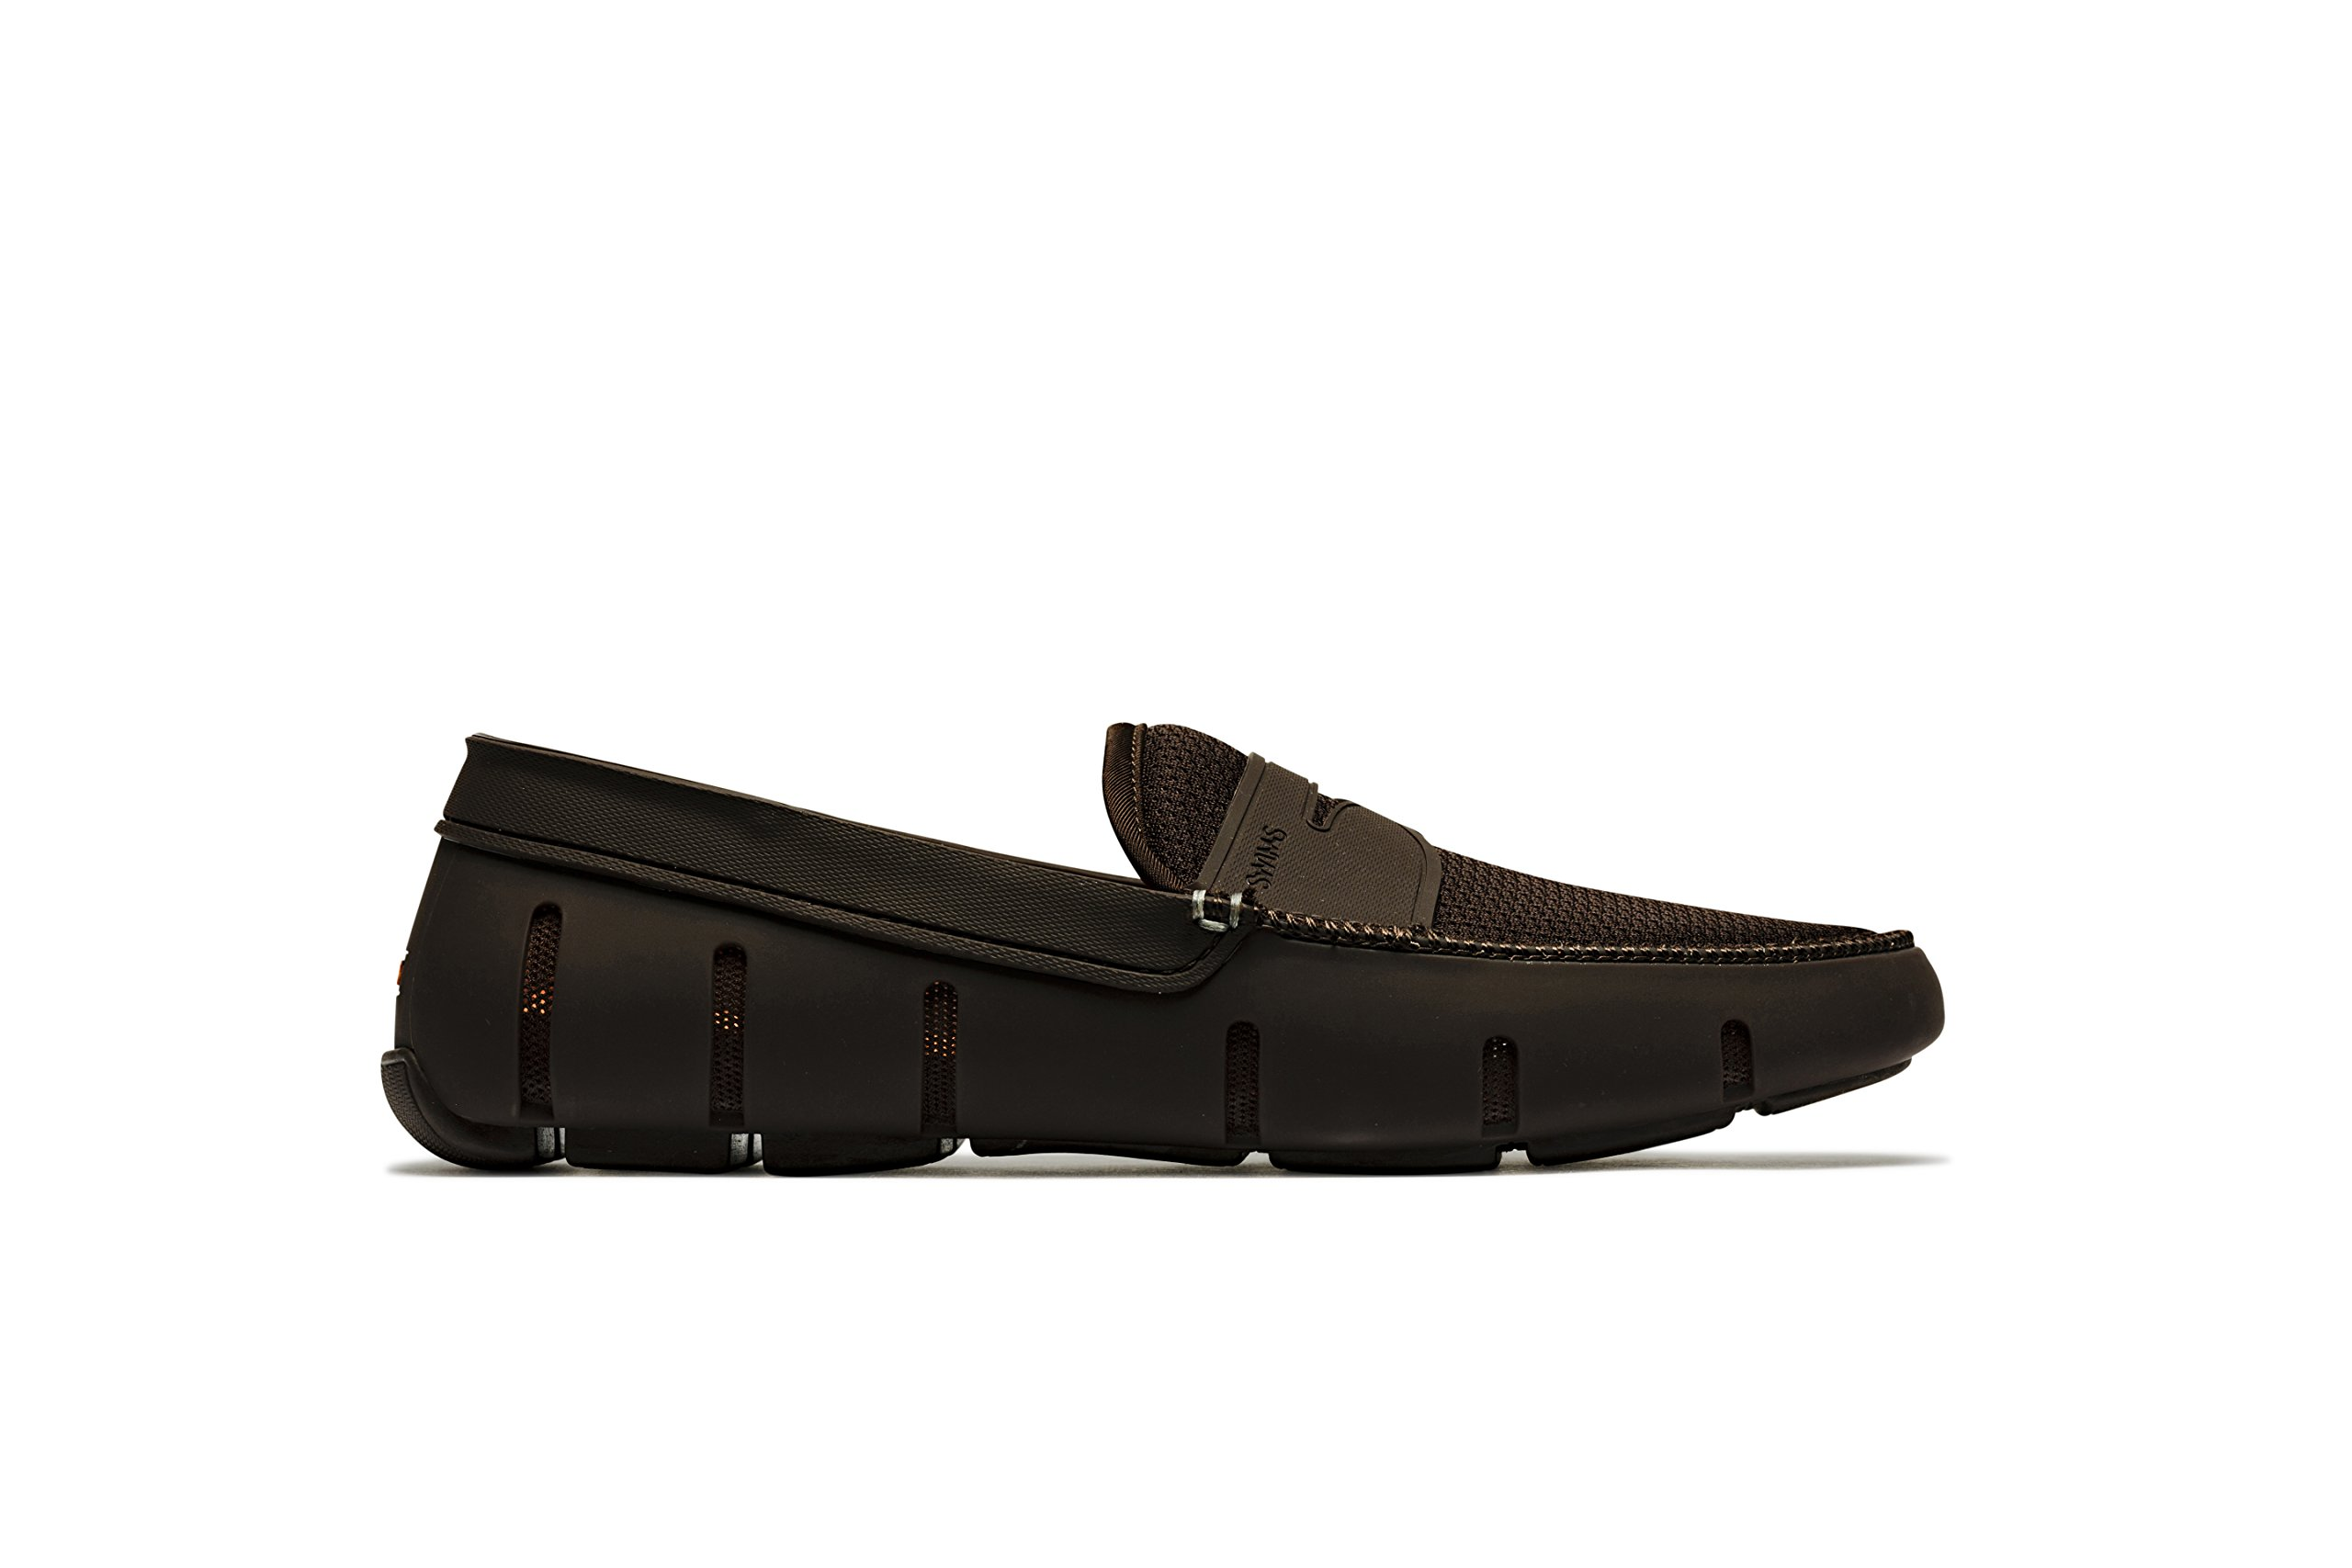 SWIMS Men's Penny Loafer for Pool and Summer - Brown, 8